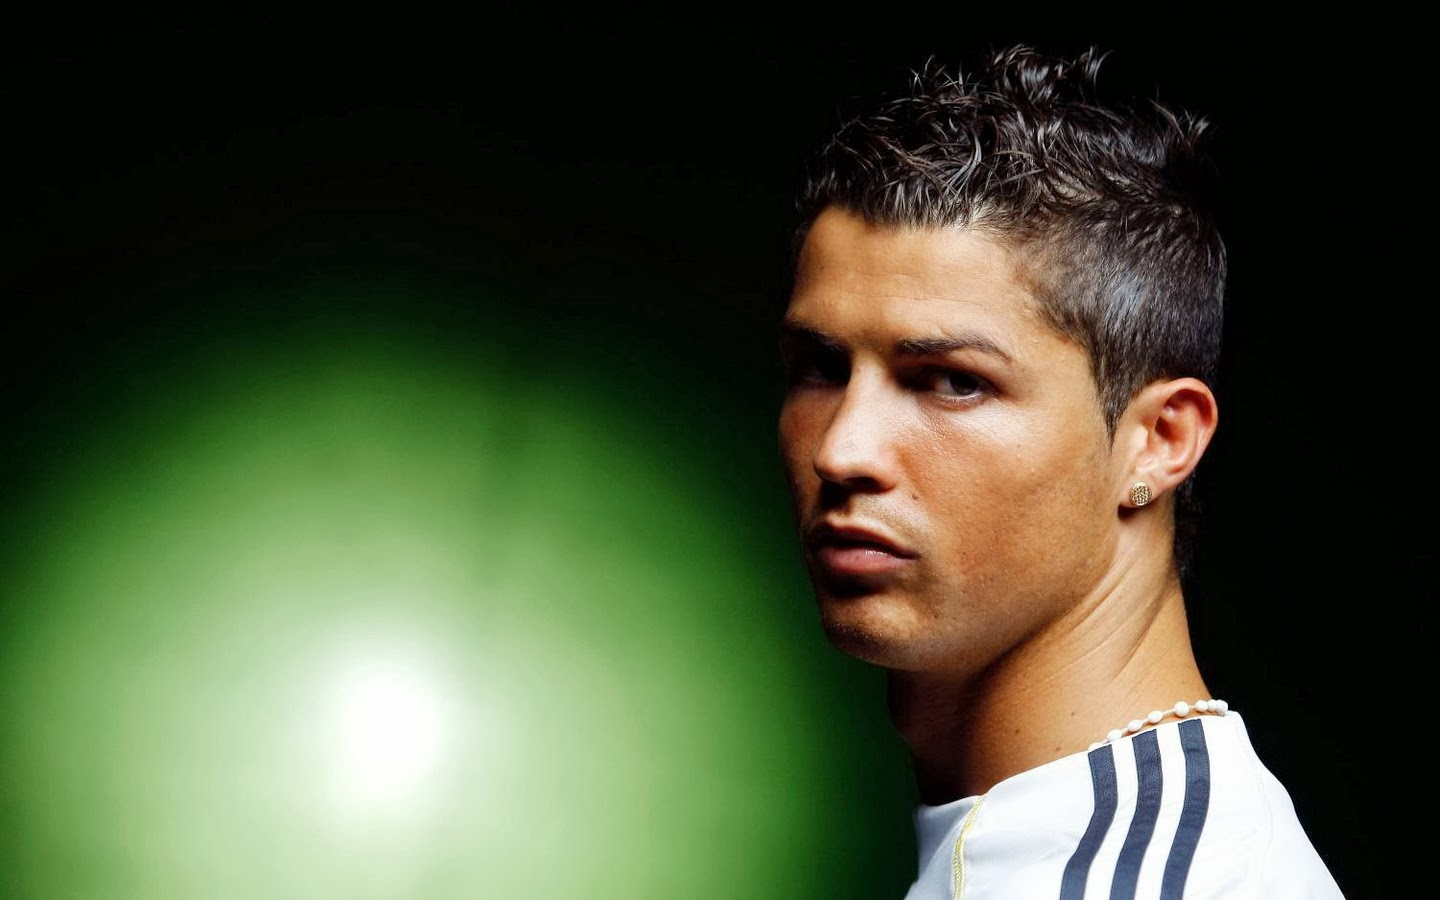 Cristiano Ronaldo HD Wallpaper,Images,Pics - HD Wallpapers